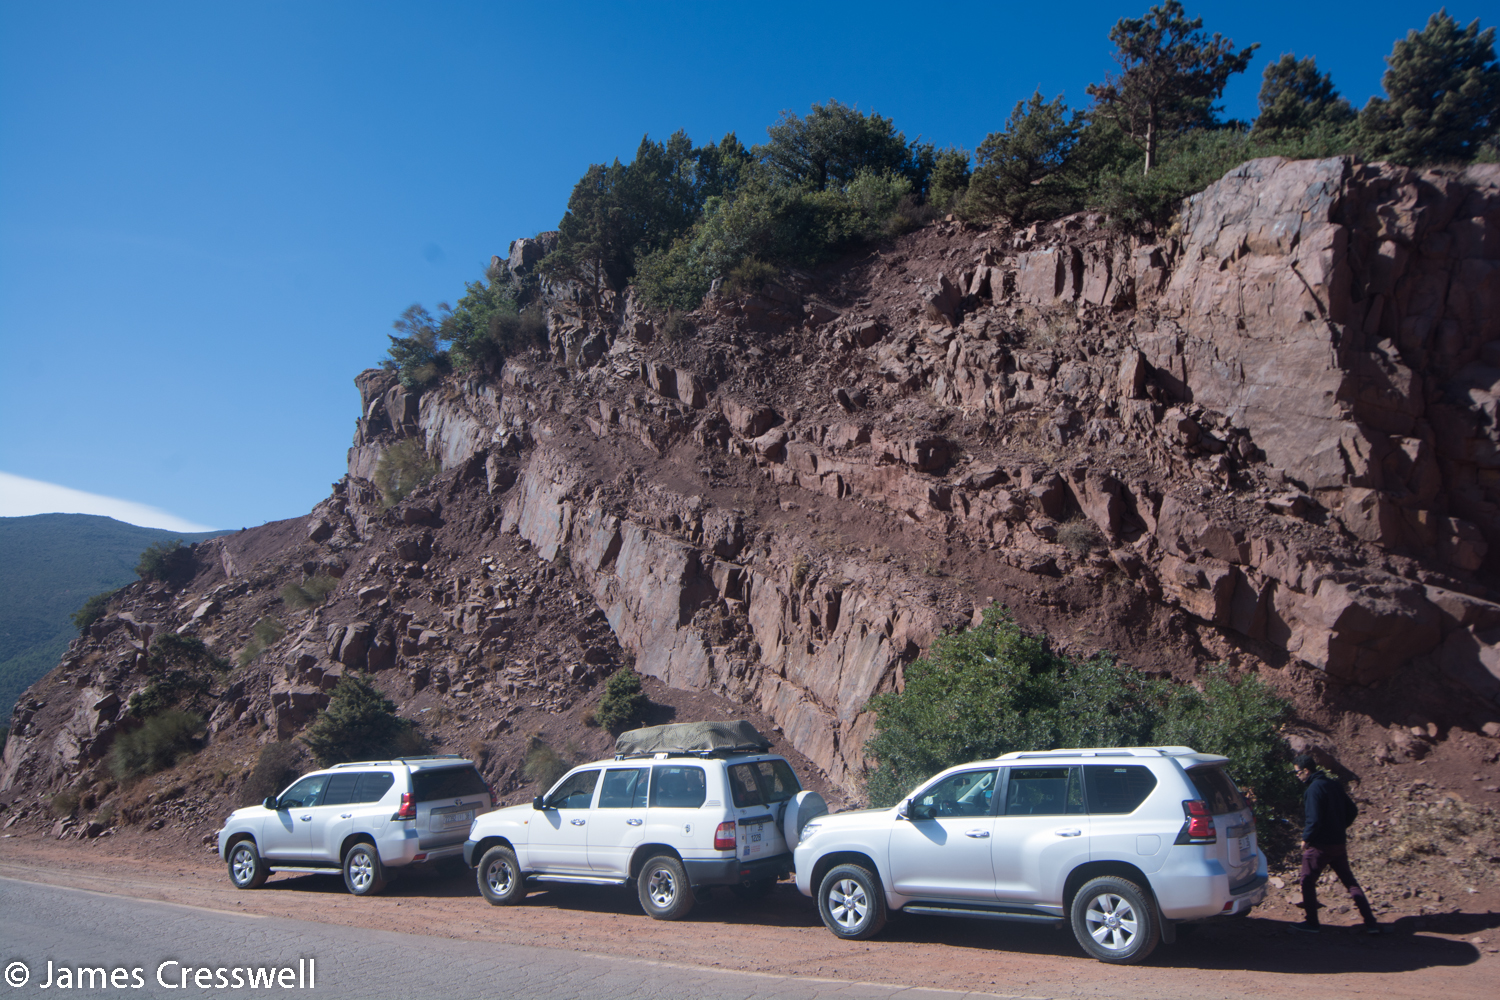 Vehicles at side of road in front of rock outcrop